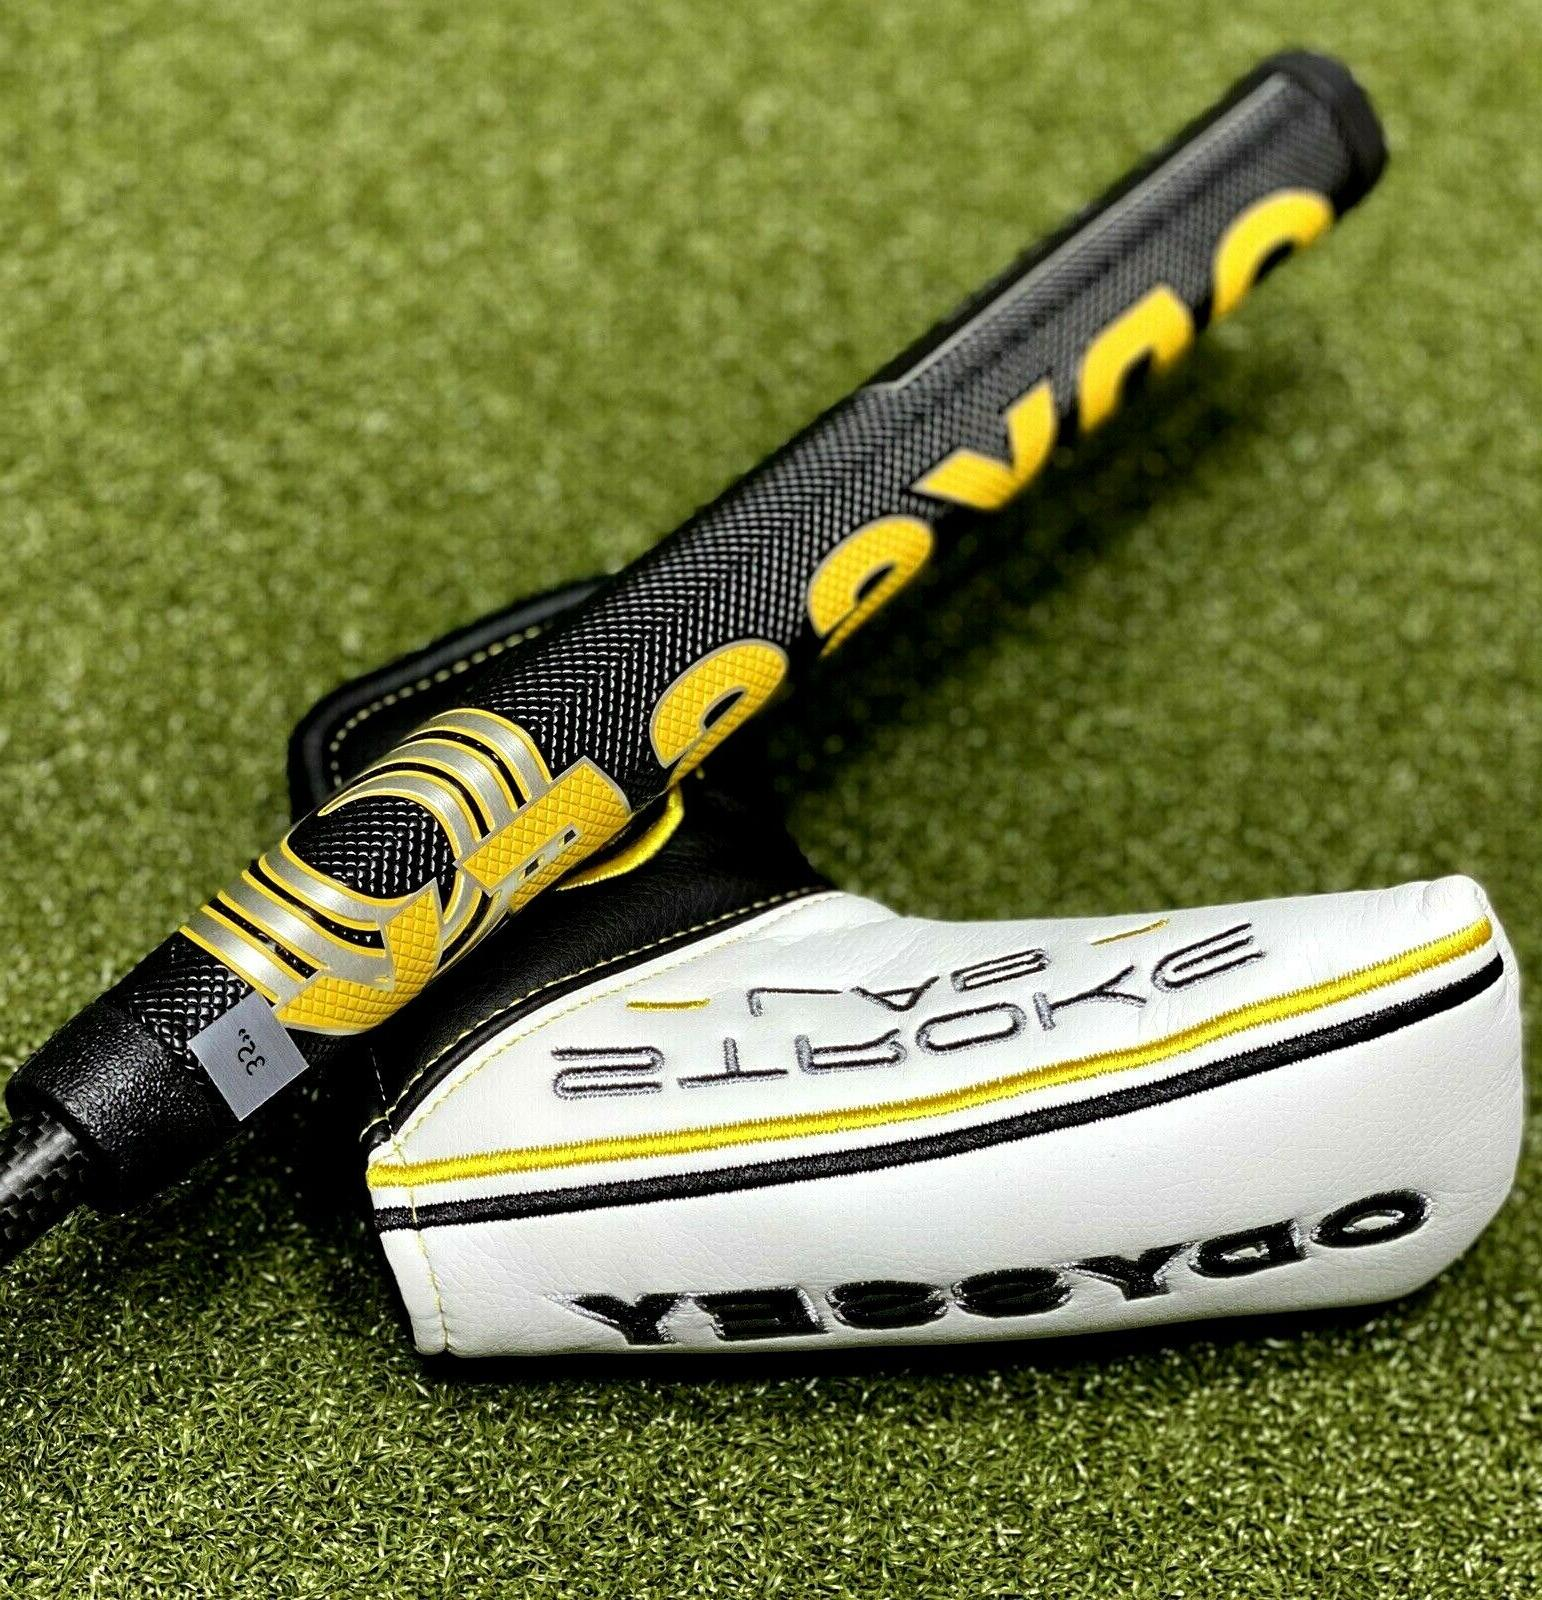 """Odyssey Lab #1 One Putter Hand 35"""" Oversize Grip Cover NEW #79196"""